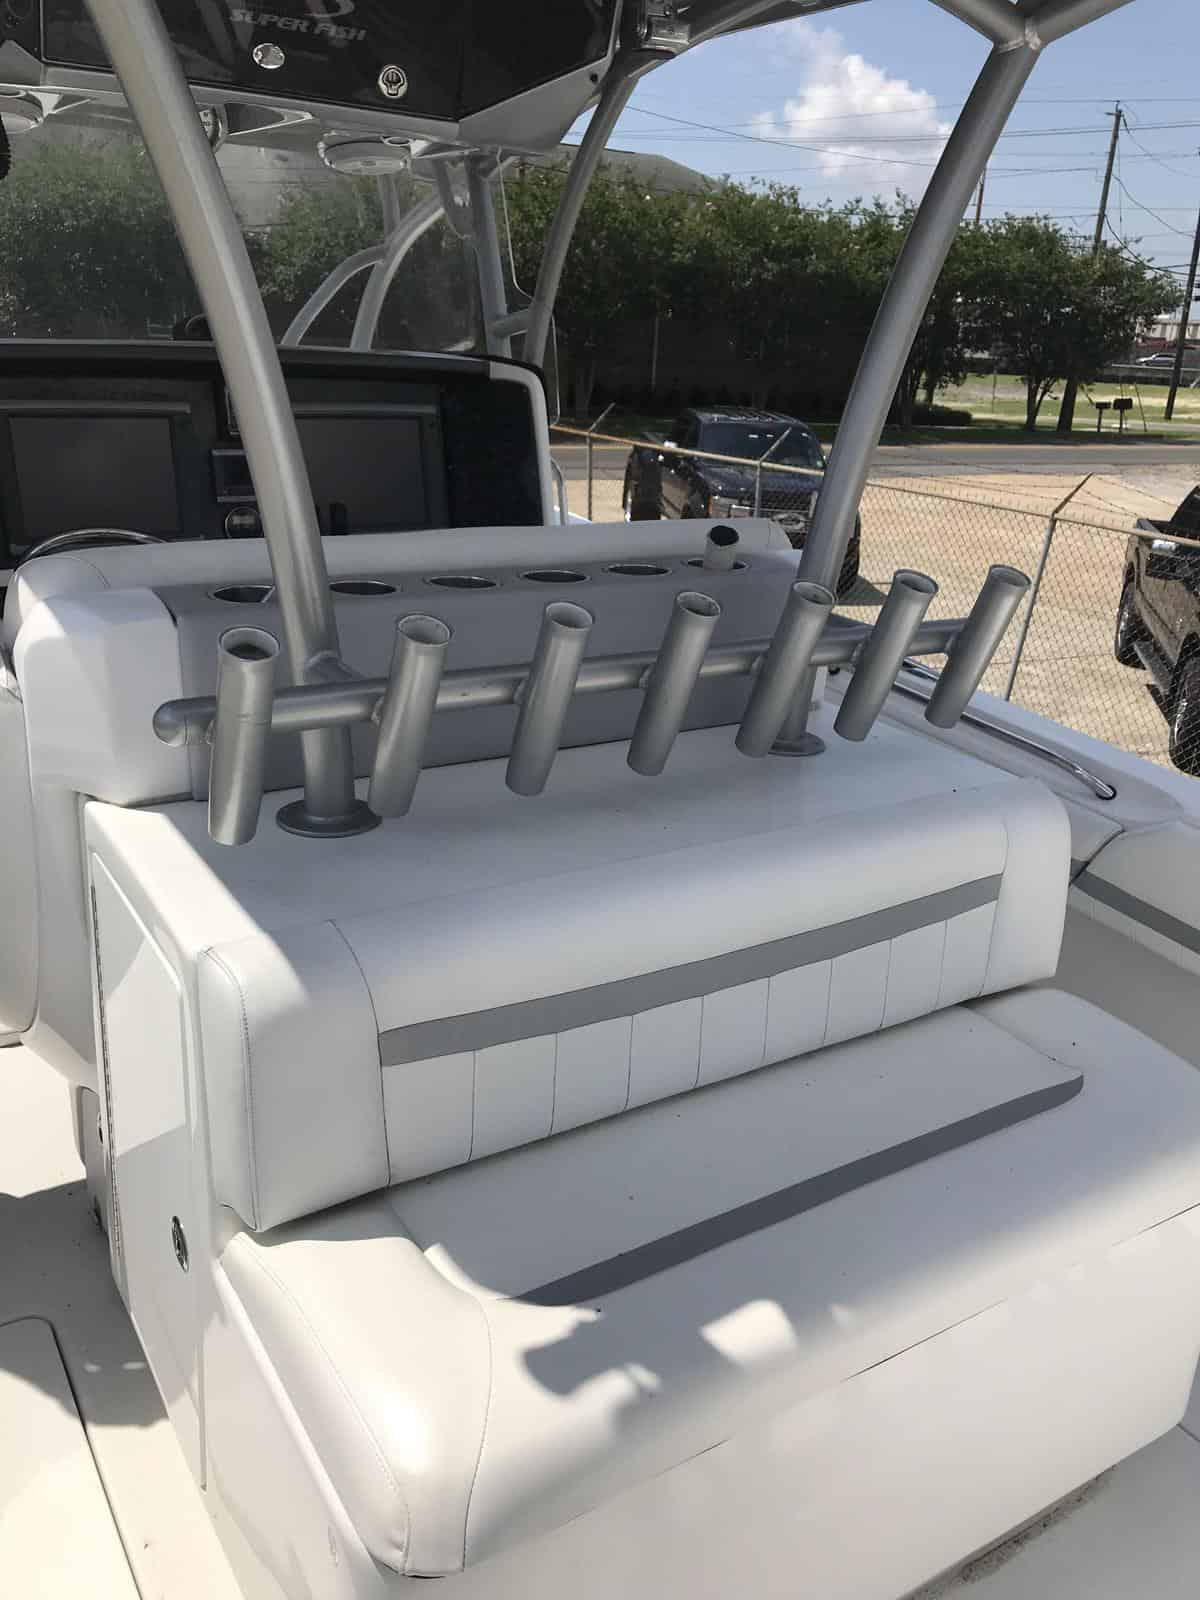 New  2014 Nor-tech 392 Super Fish Super Fish Boat Engine in Metairie,